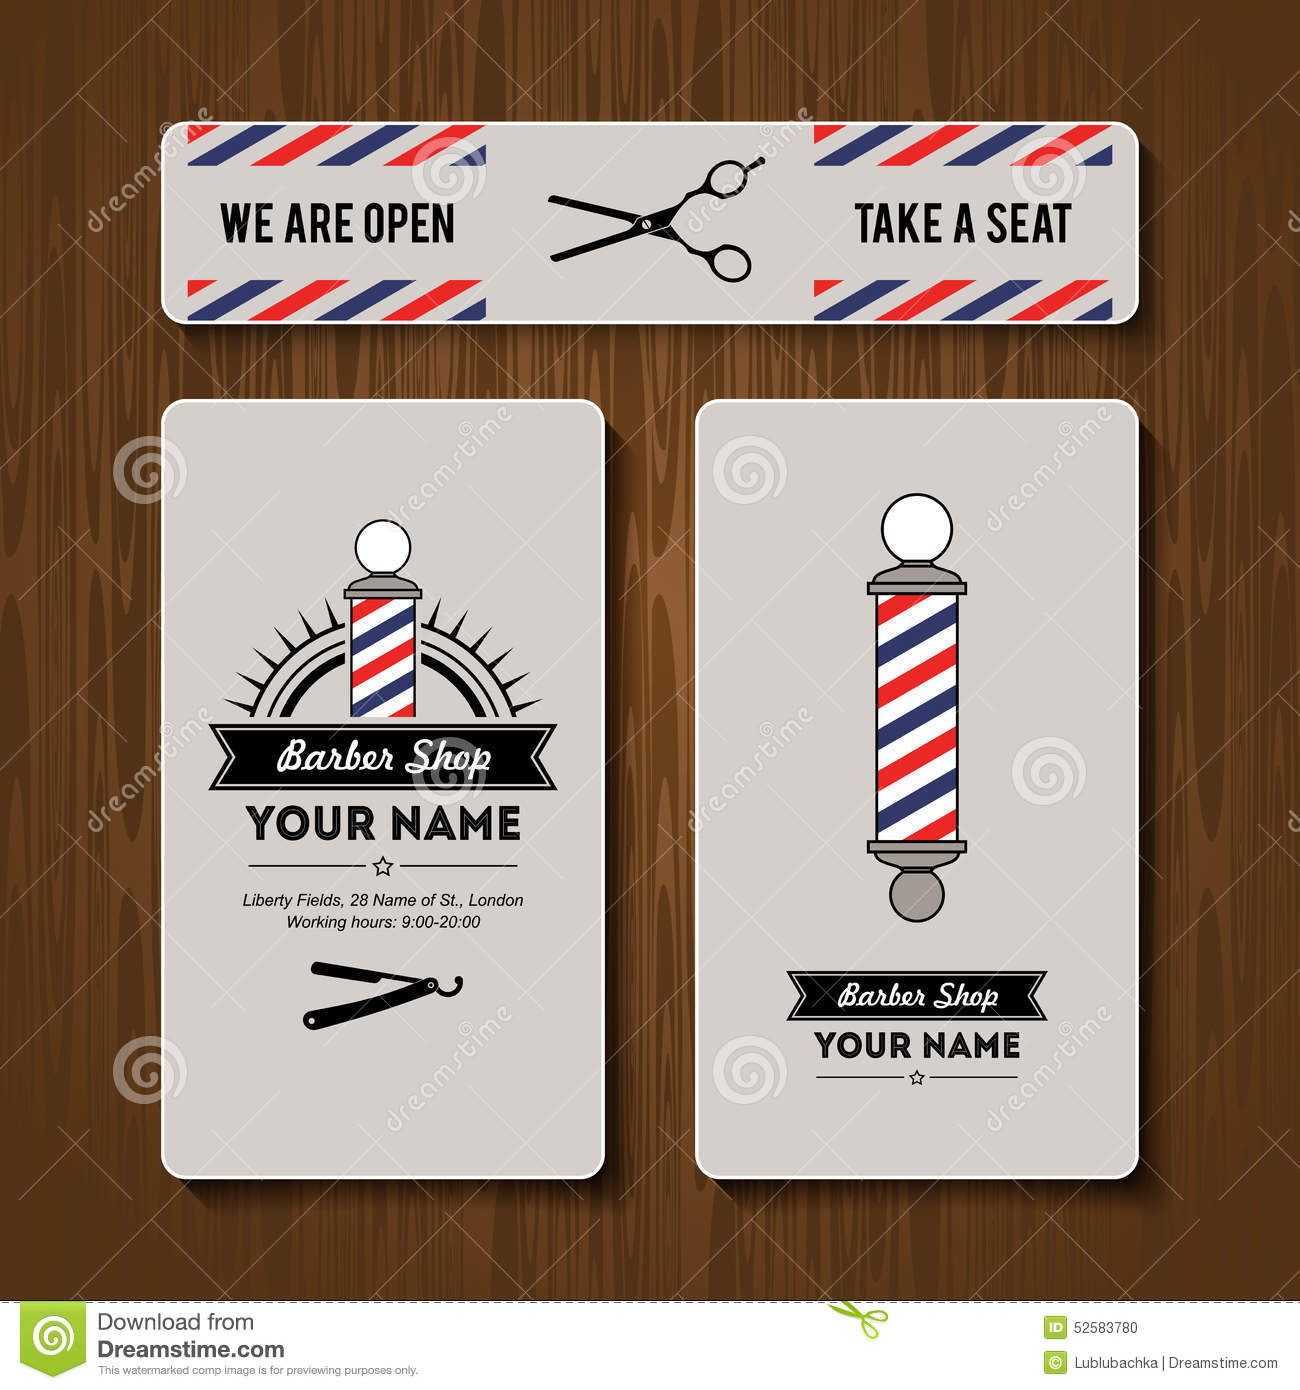 Business card template design for barber shop stock vector hair salon barber shop business card design template set stock photo cheaphphosting Images